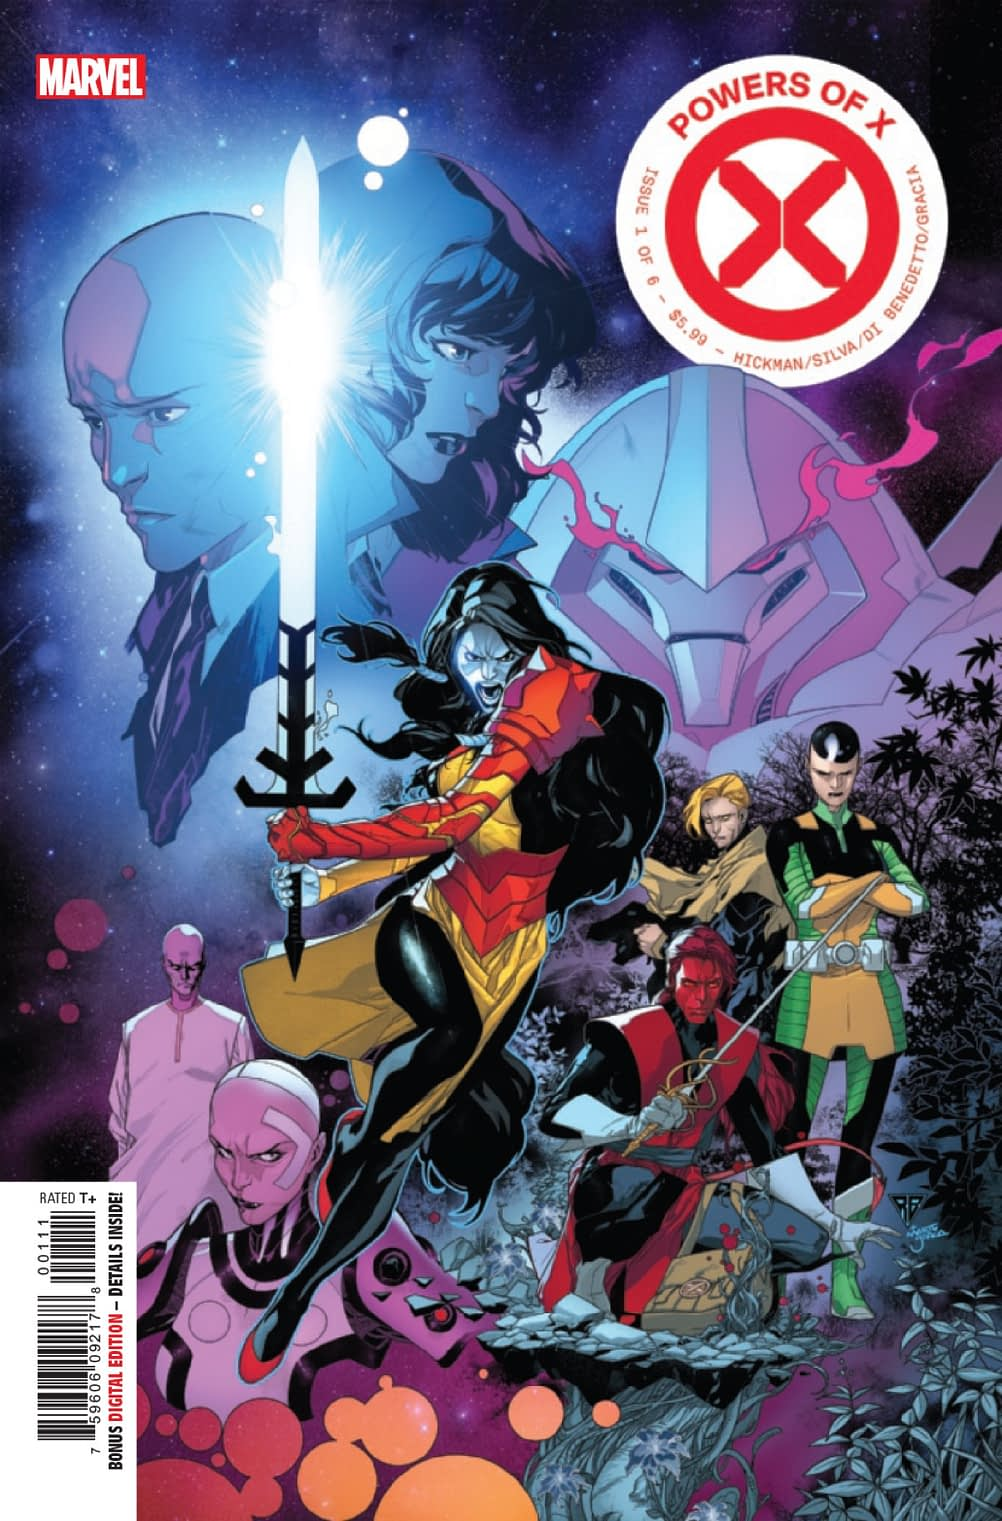 Powers of X #1: Yet Another Post-Apocalyptic Future X-Men Story?